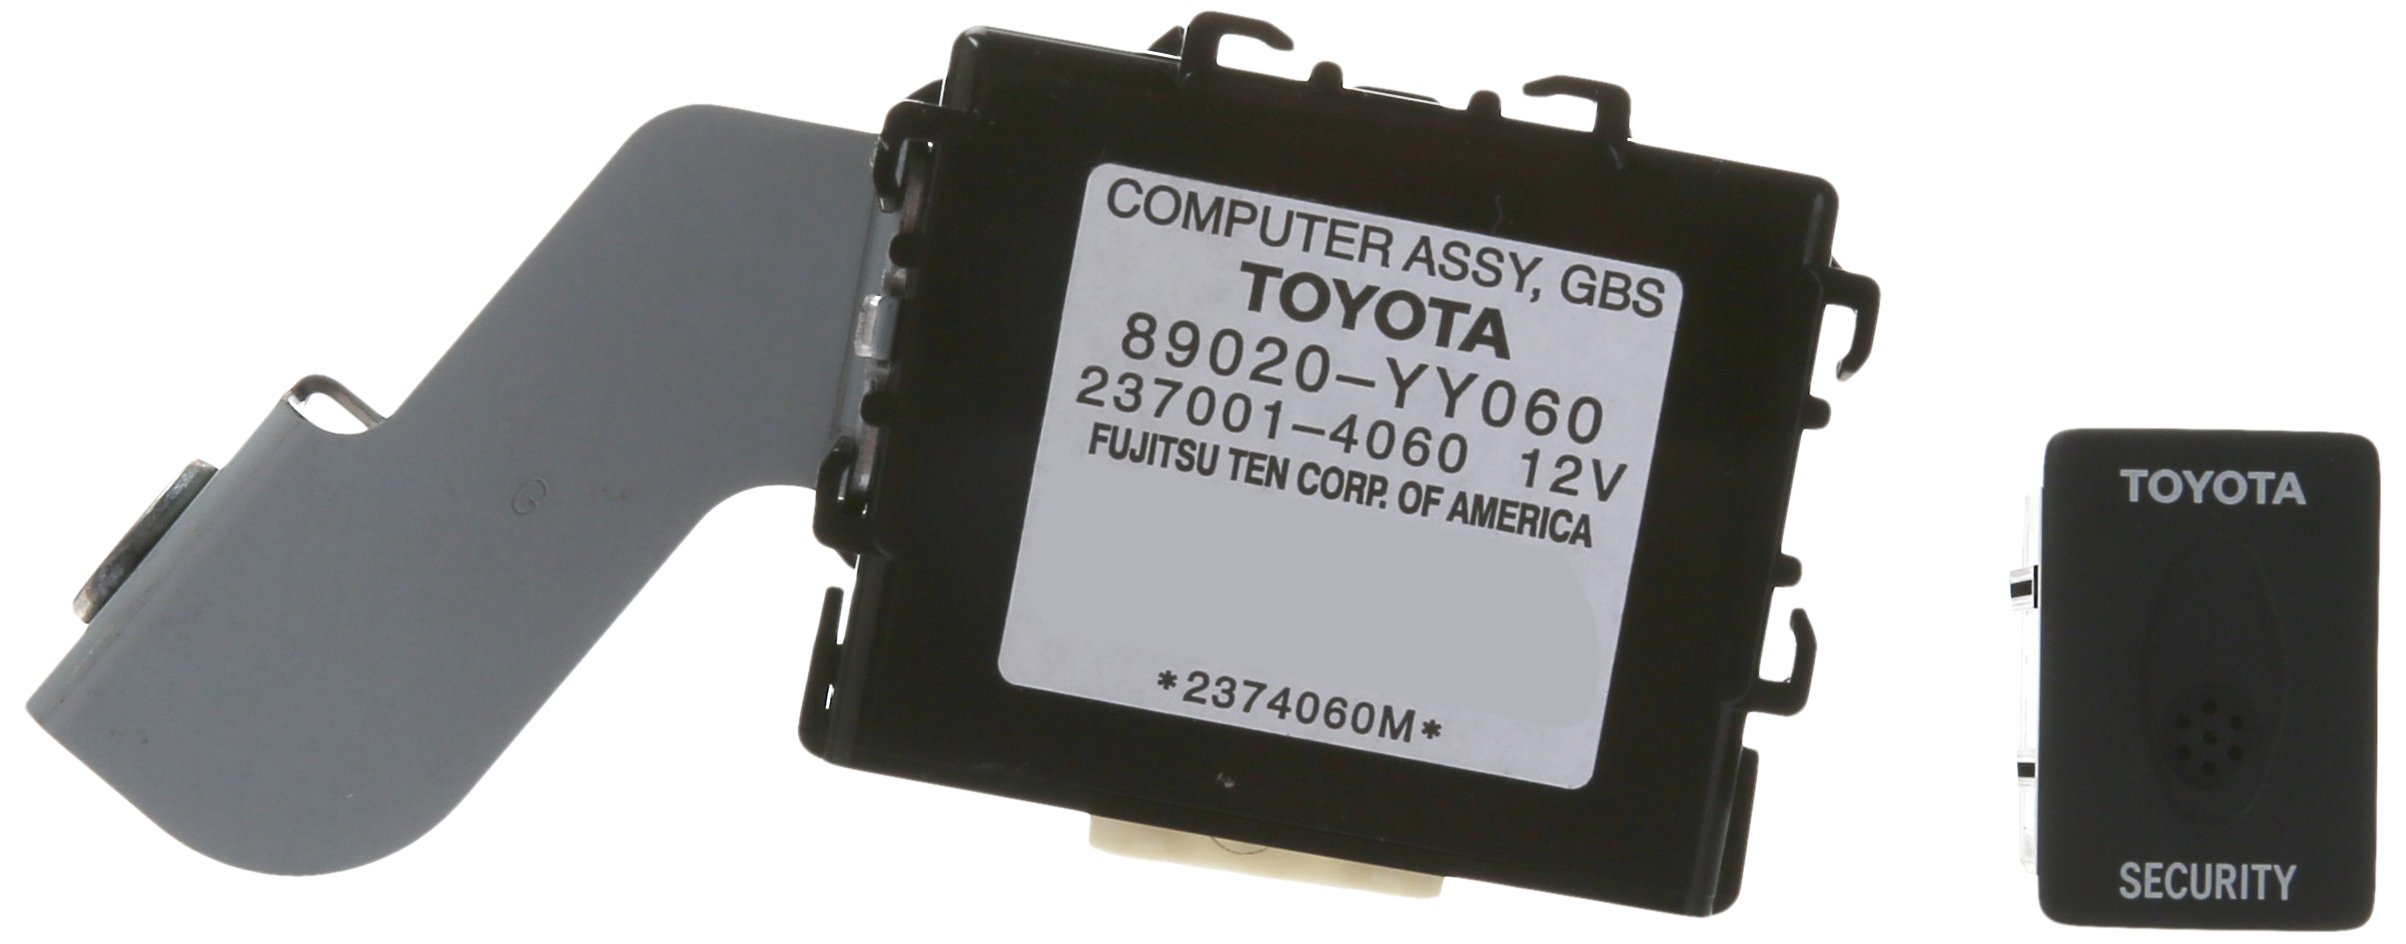 Genuine Toyota Accessories (08586-0C890) RS3200 Plus Alarm Security System with Glass Breakage Sensor